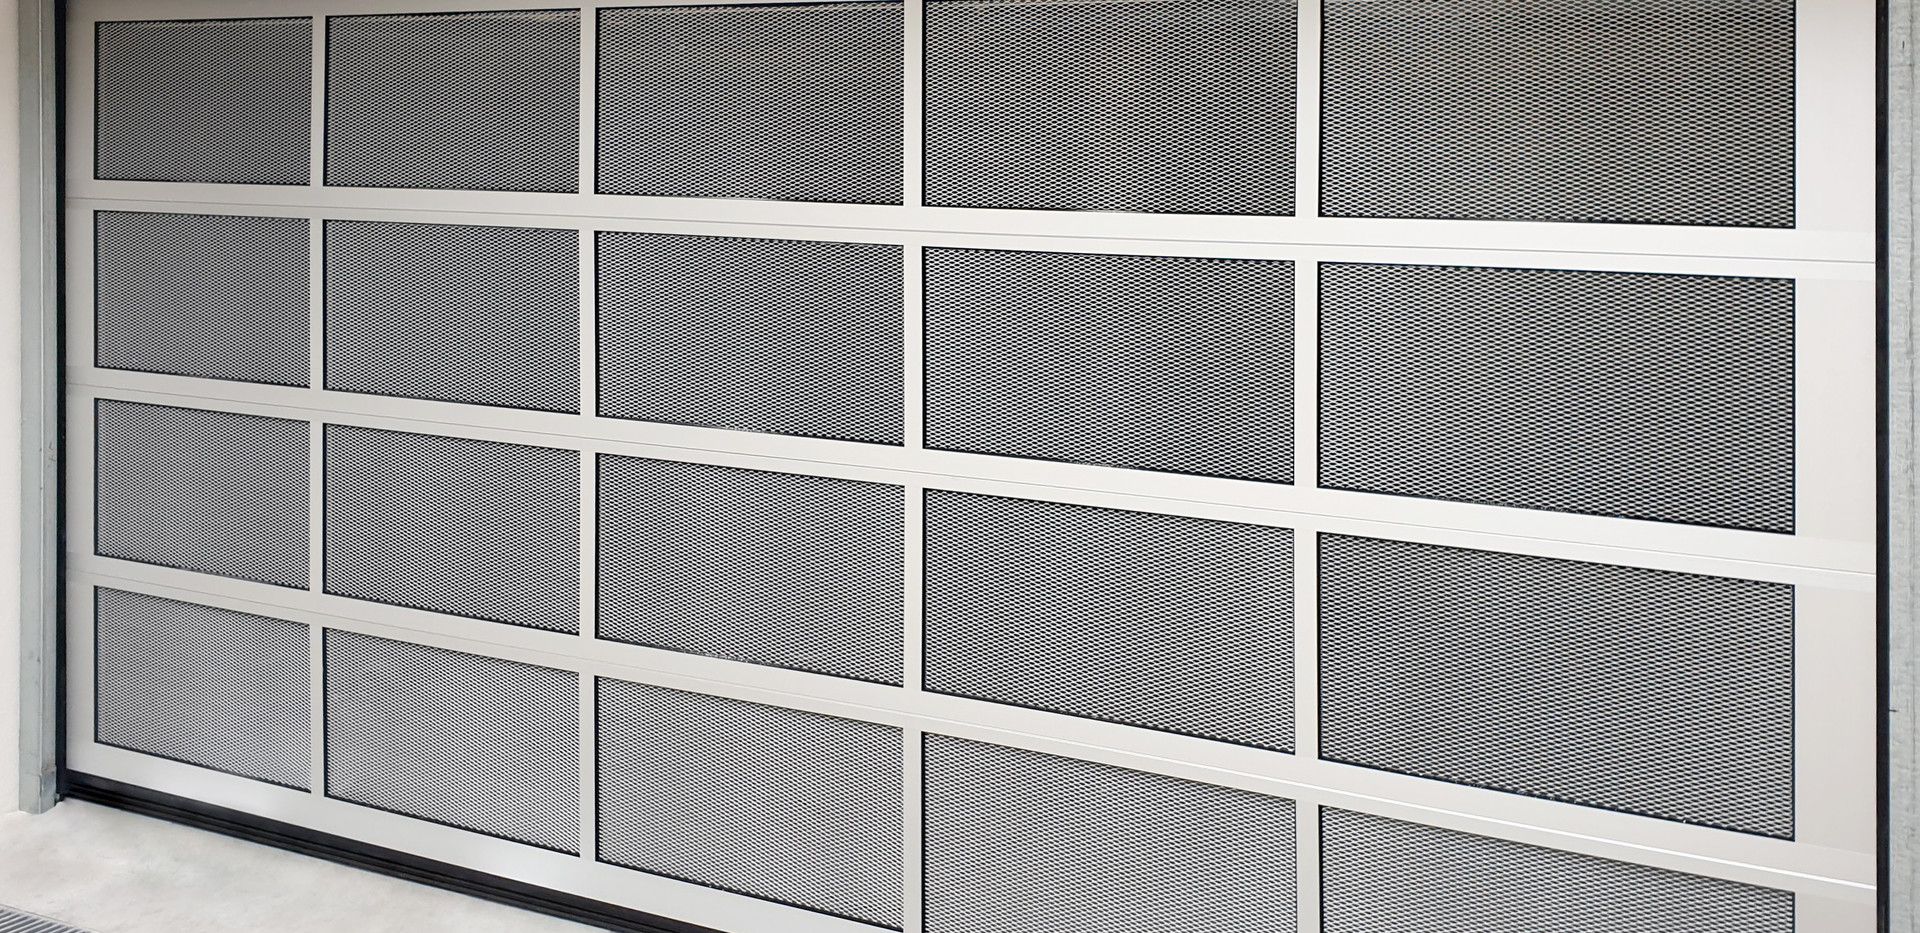 Perforated sectional door